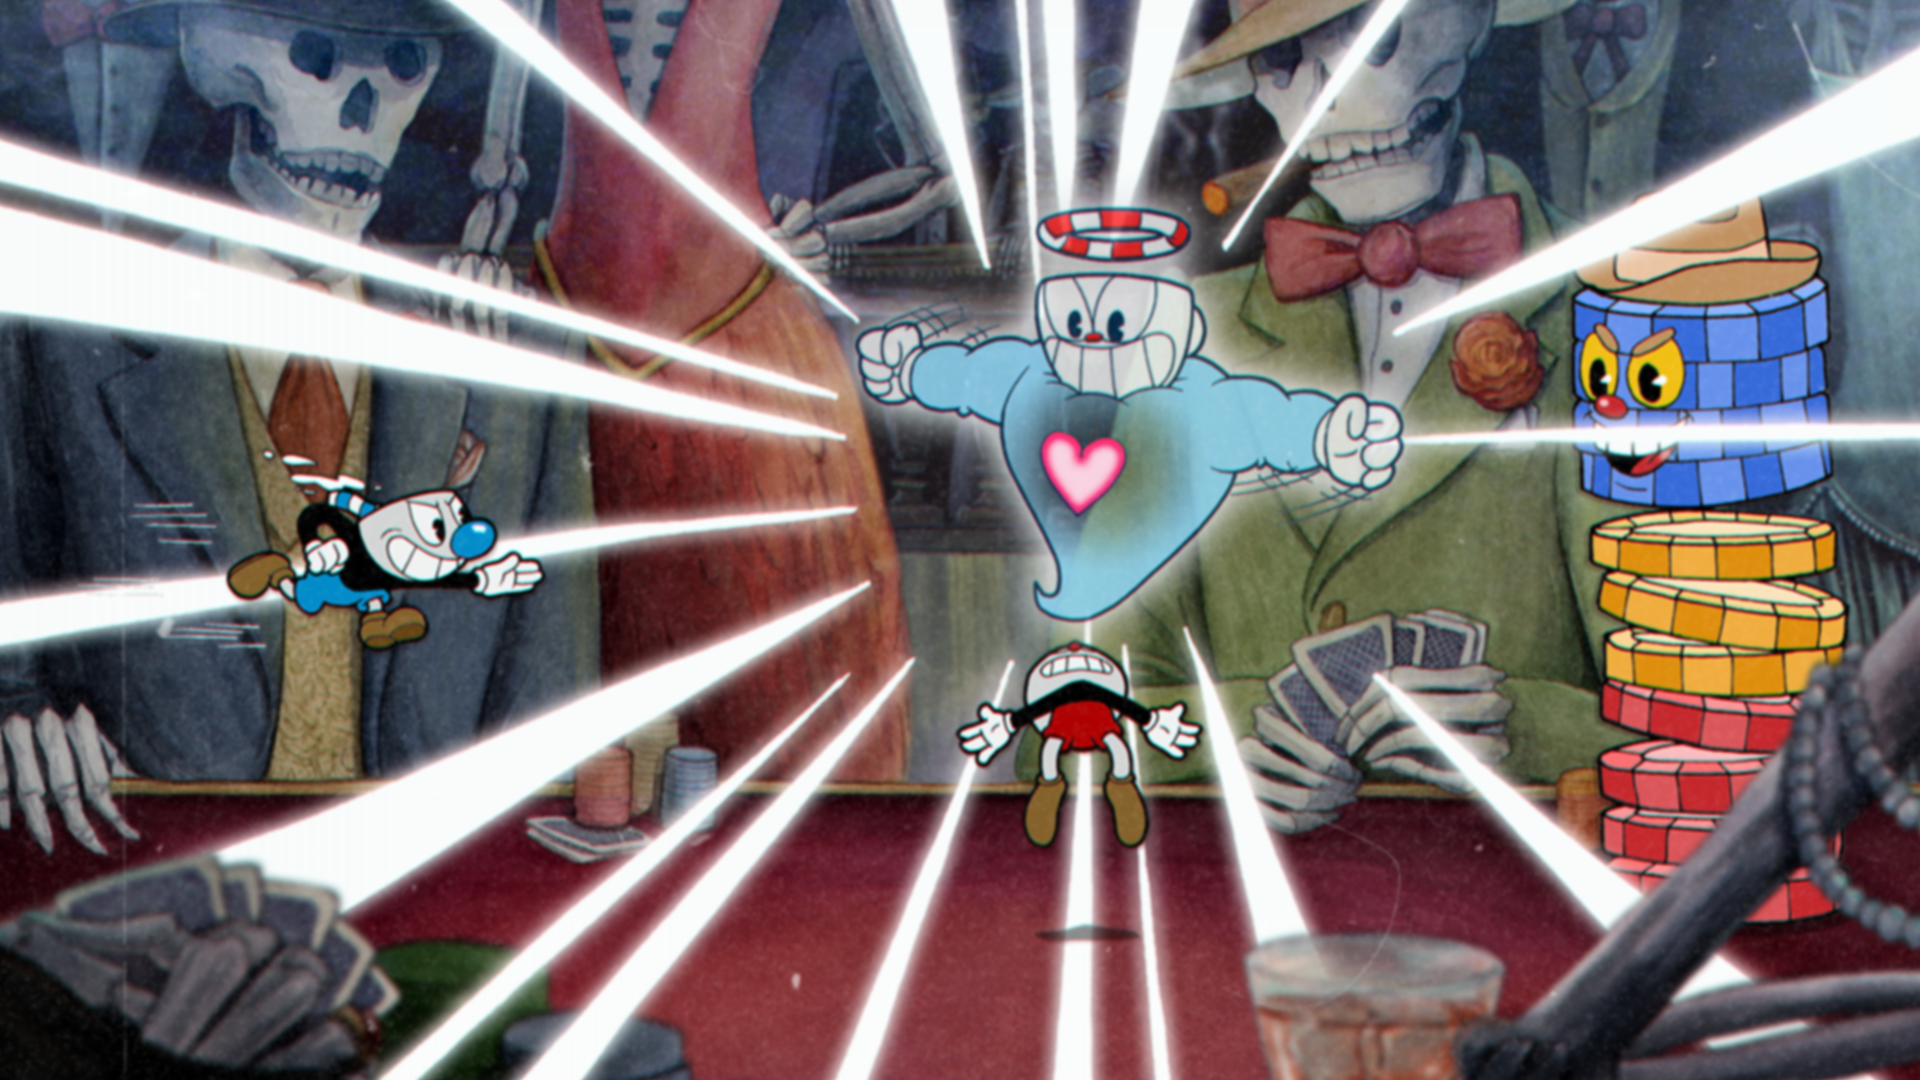 Screenshot from Cuphead. Cuphead's ghost hovers above his body; flexing its muscles.